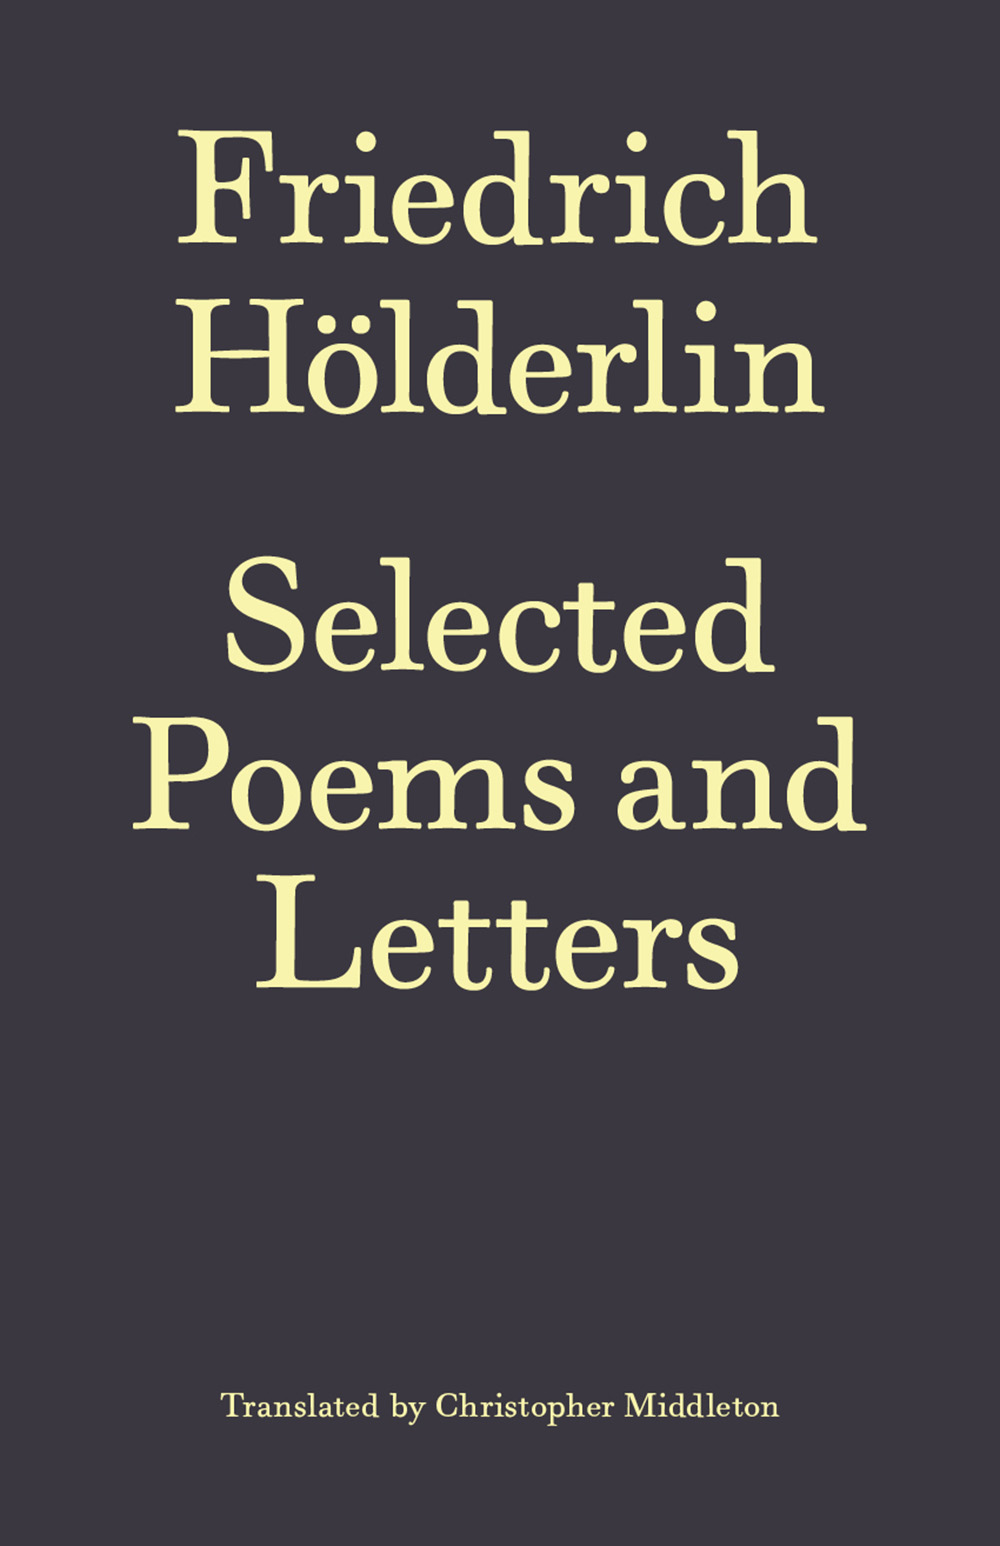 Friedrich Hölderlin: Selected Poems and Letters